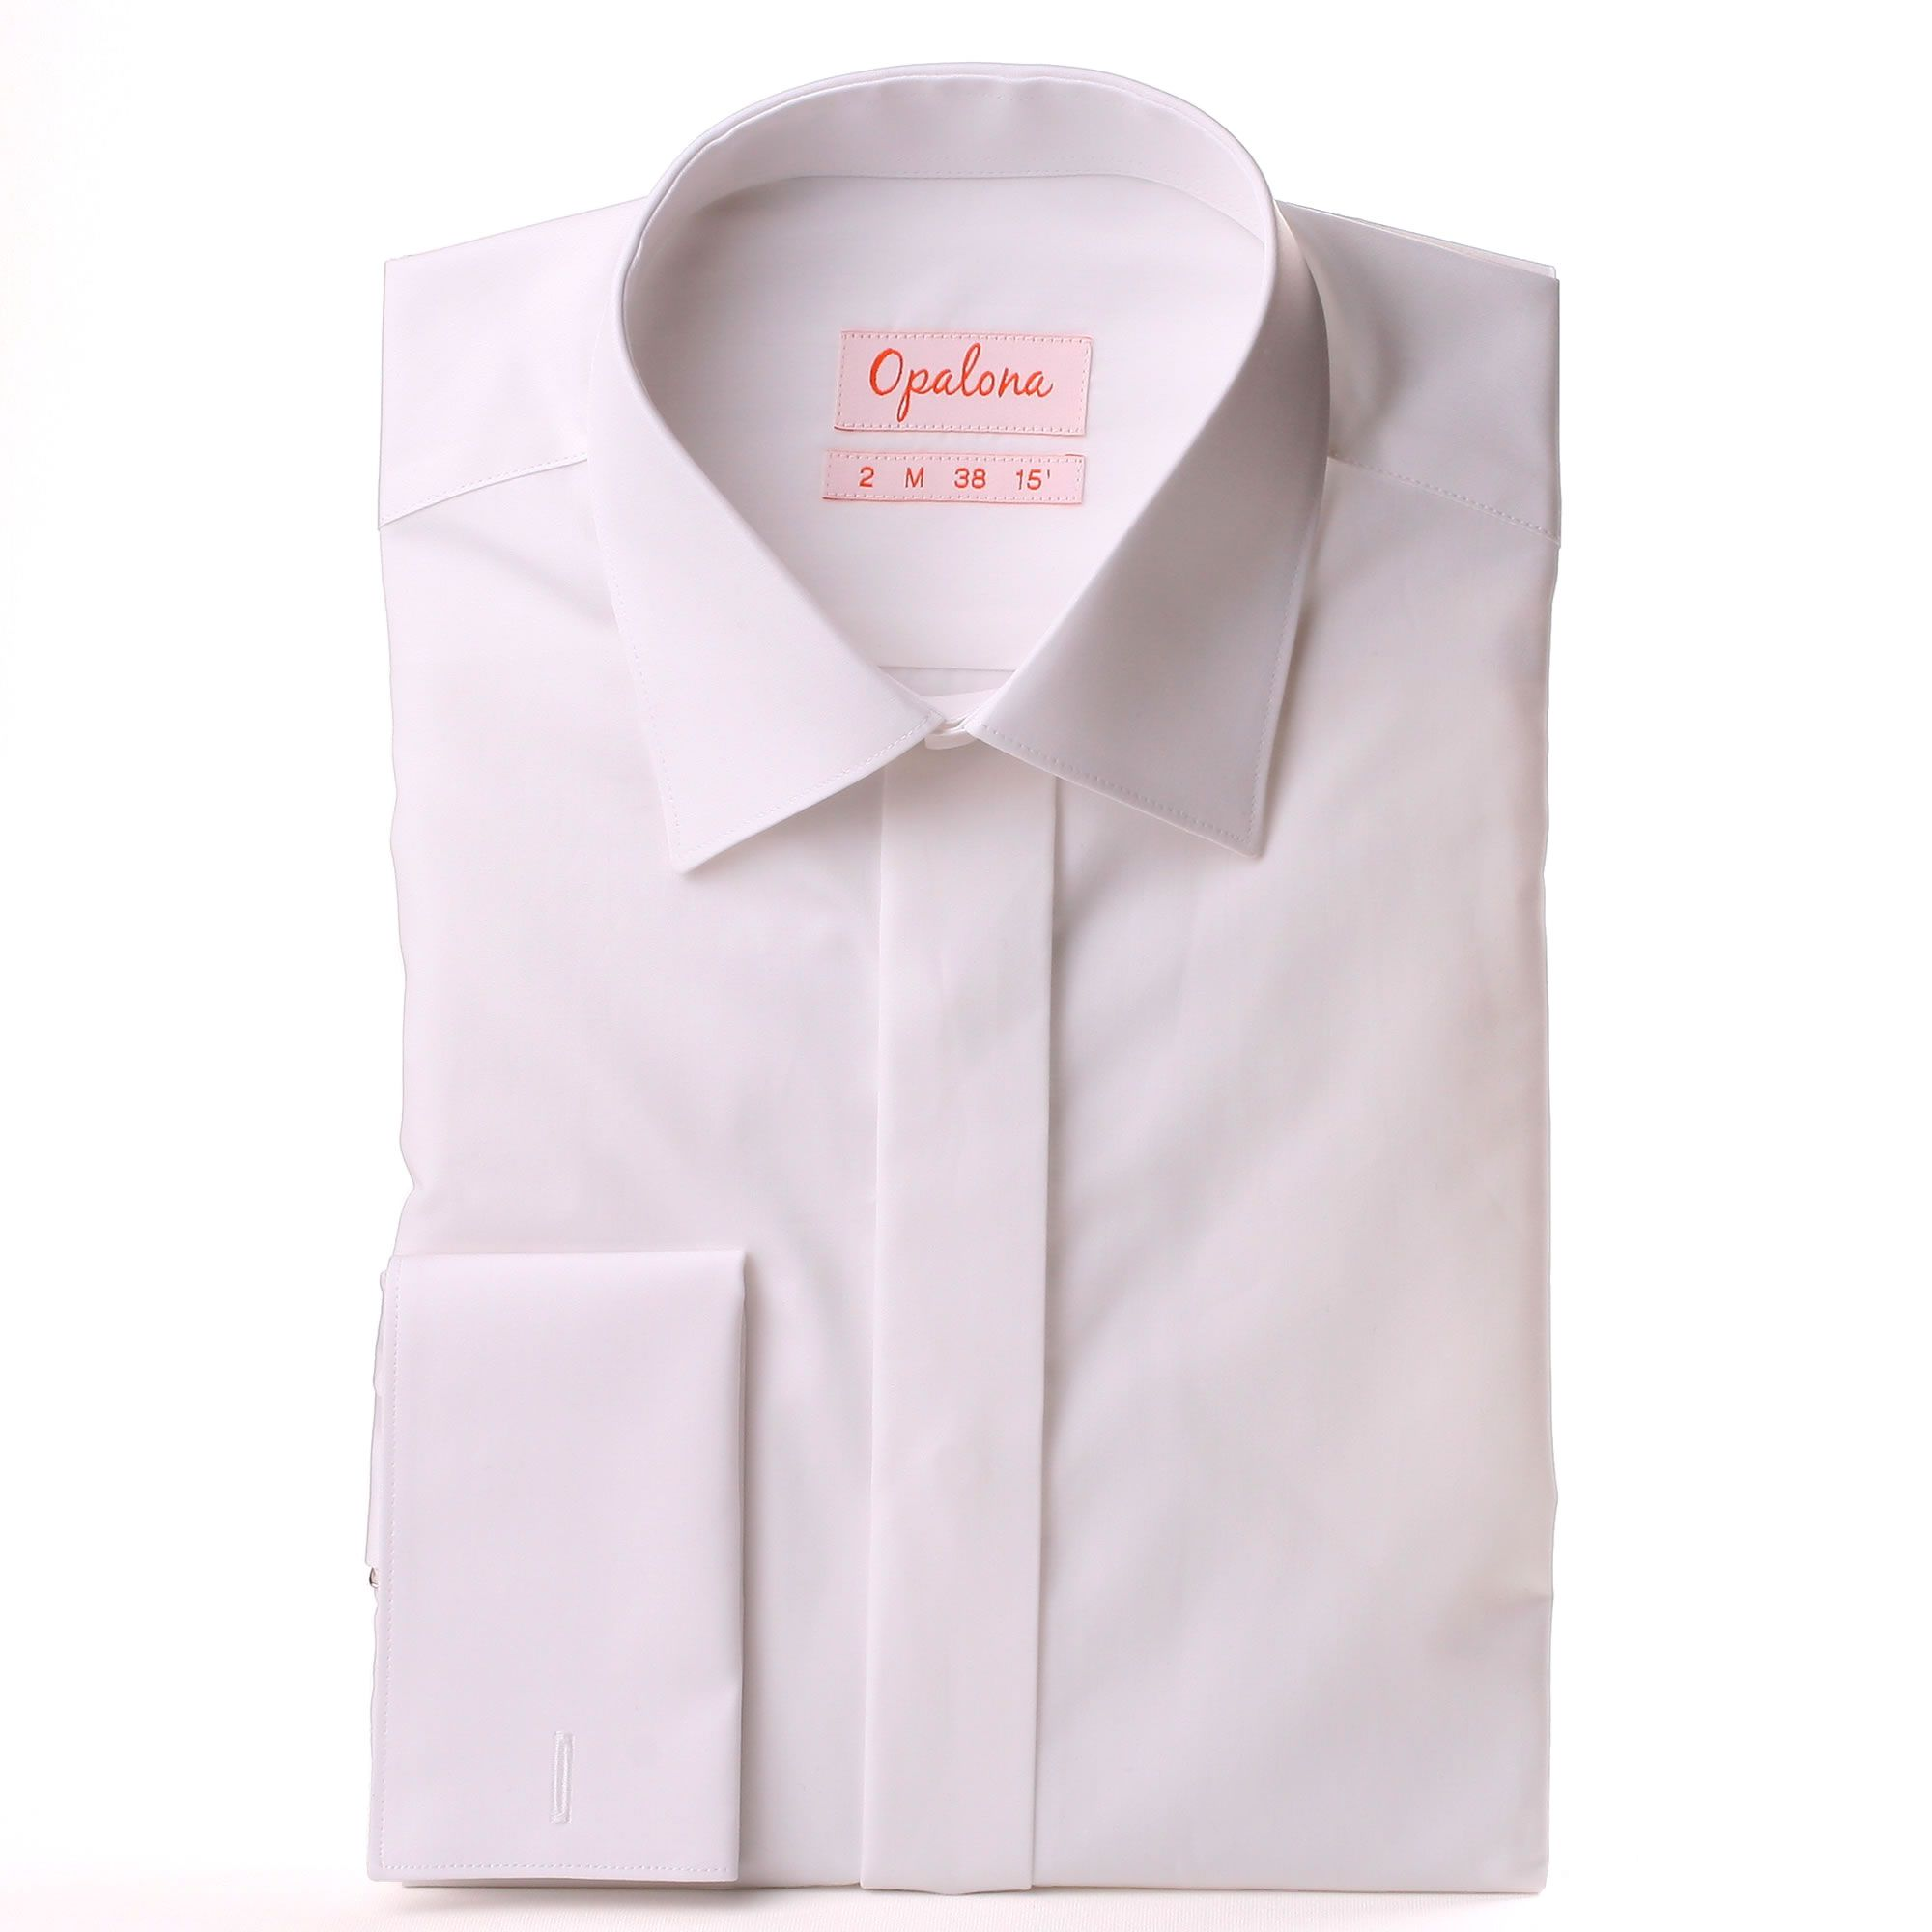 White poplin french cuff shirt with a covered placket for Tuxedo shirt covered placket